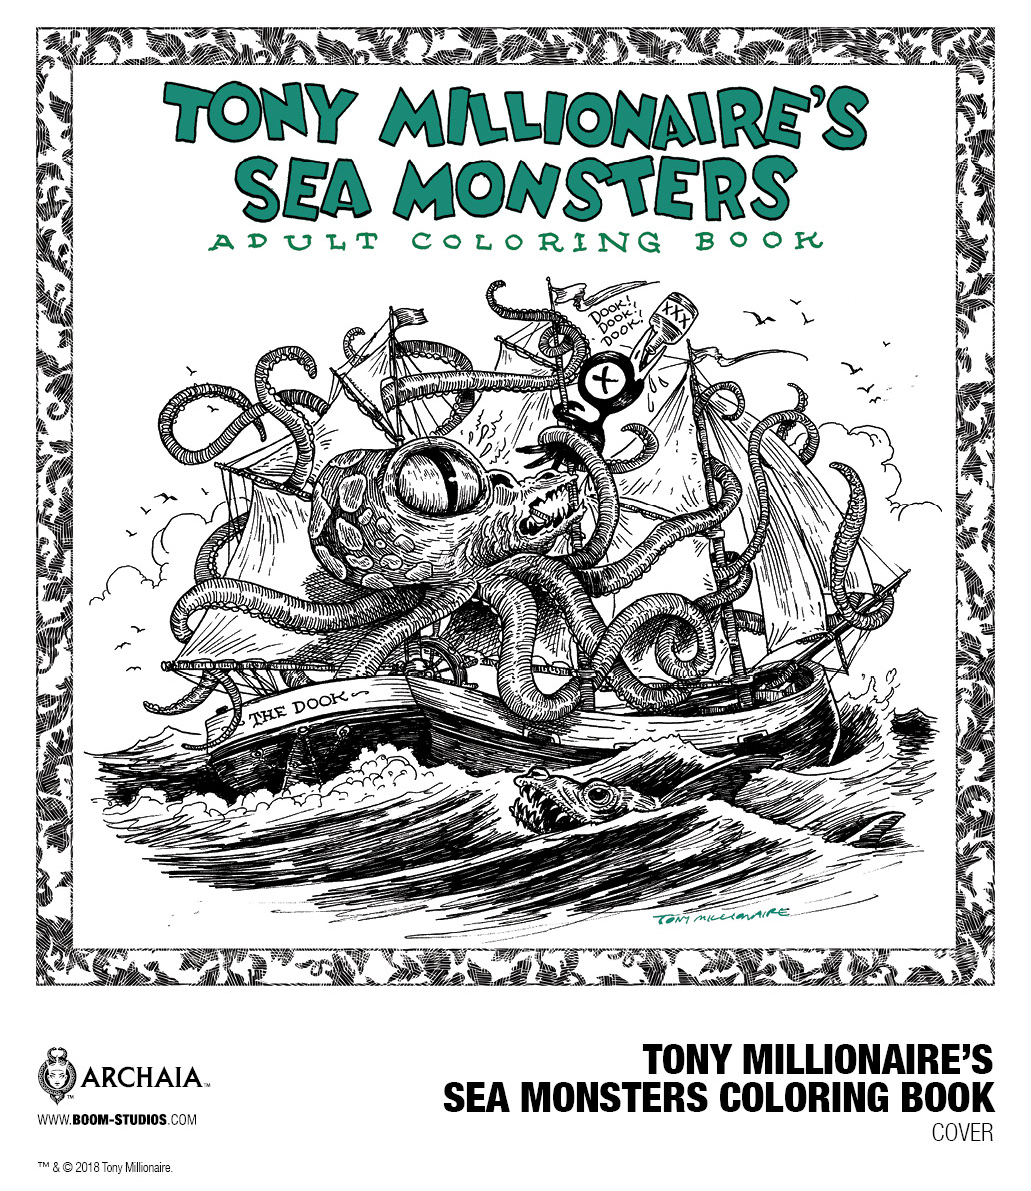 EXCLUSIVE Tony Millionaire Is Getting A Sea Monsters Coloring Book